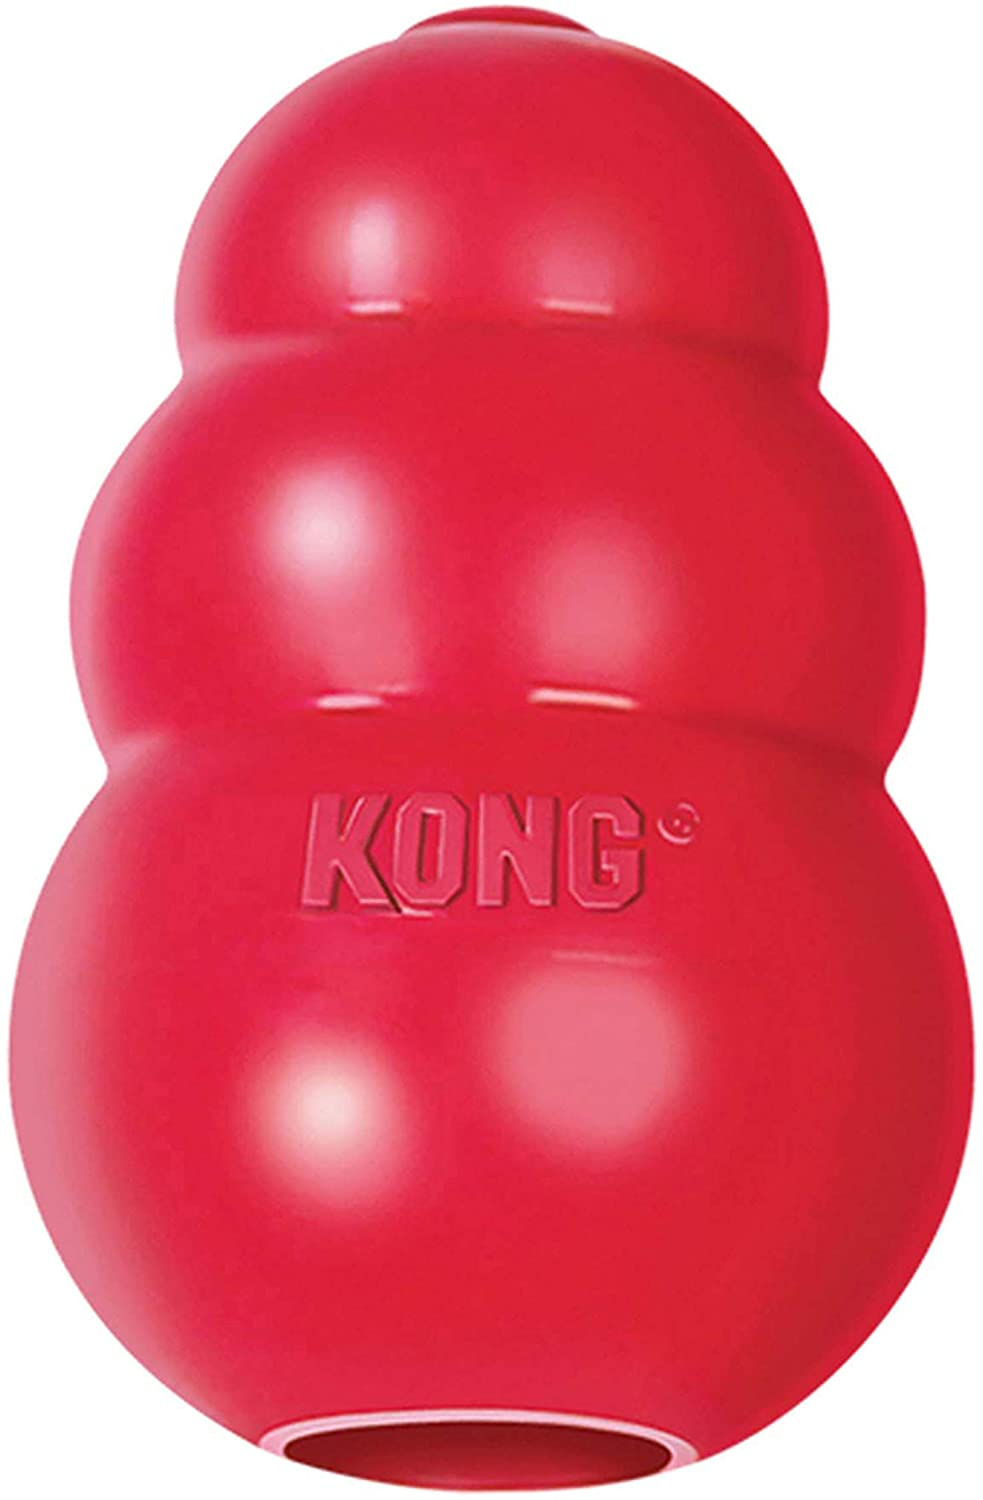 Kong Food dispensing toy for dogs helps relieve stress